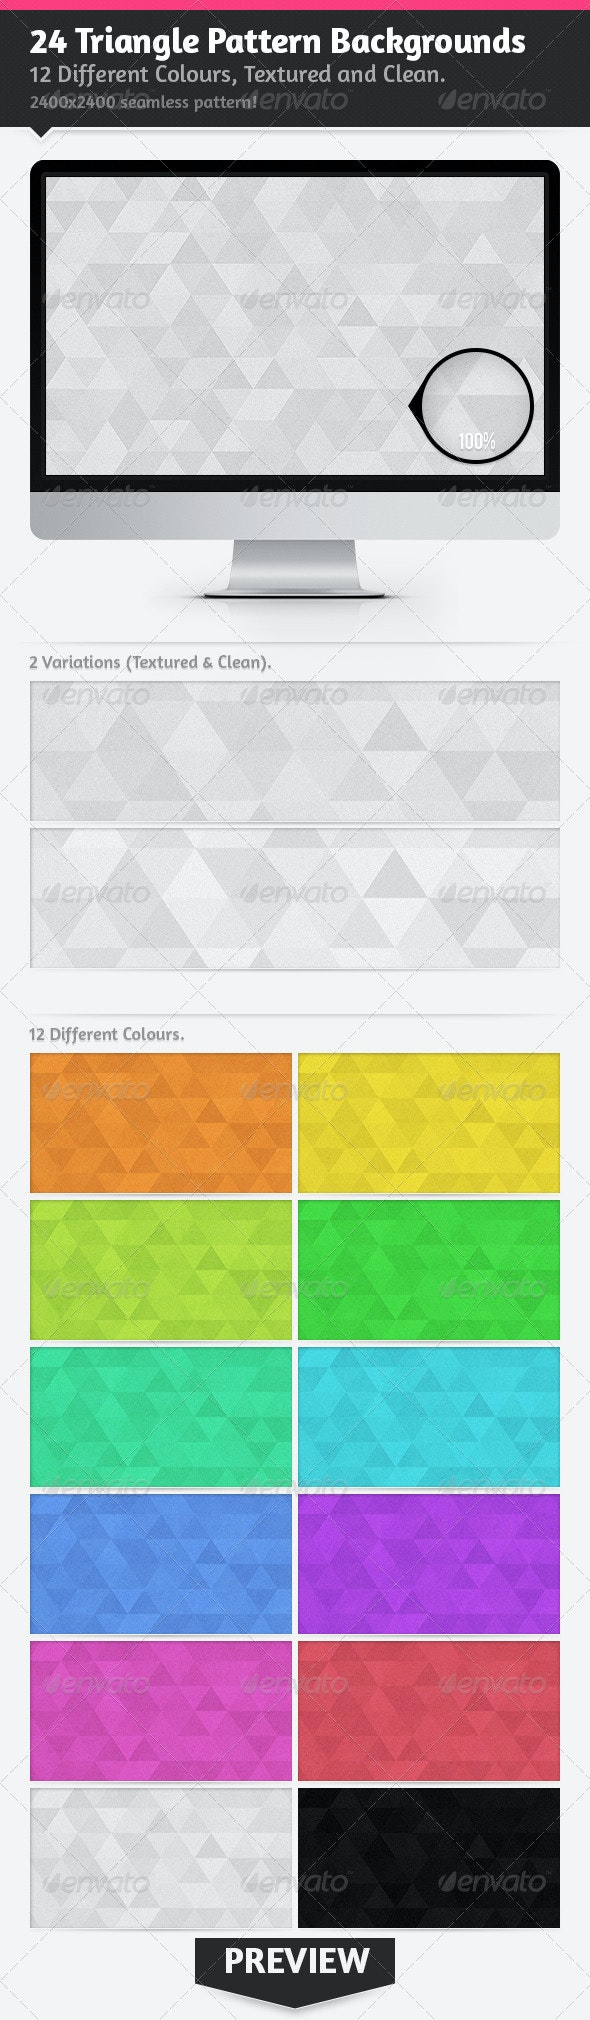 24 Triangle Pattern Backgrounds - Patterns Backgrounds